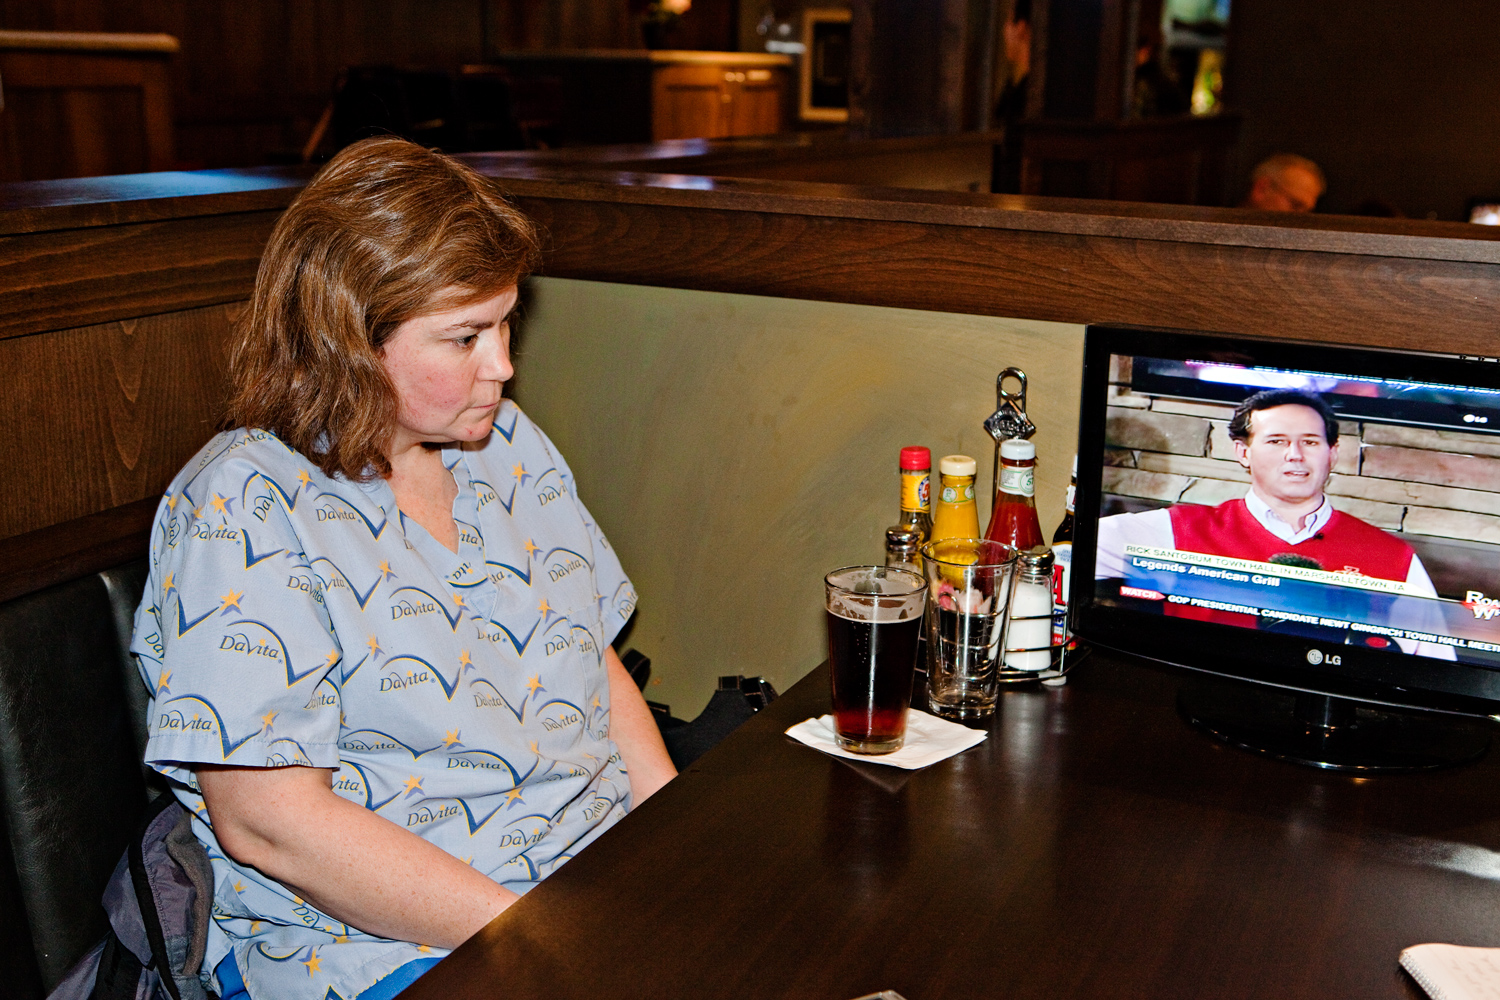 A woman watches Rick Santorum on a closed curcuit TV during a campaign event at Legends American Grill in Marshalltown, Iowa on December 30, 2011.